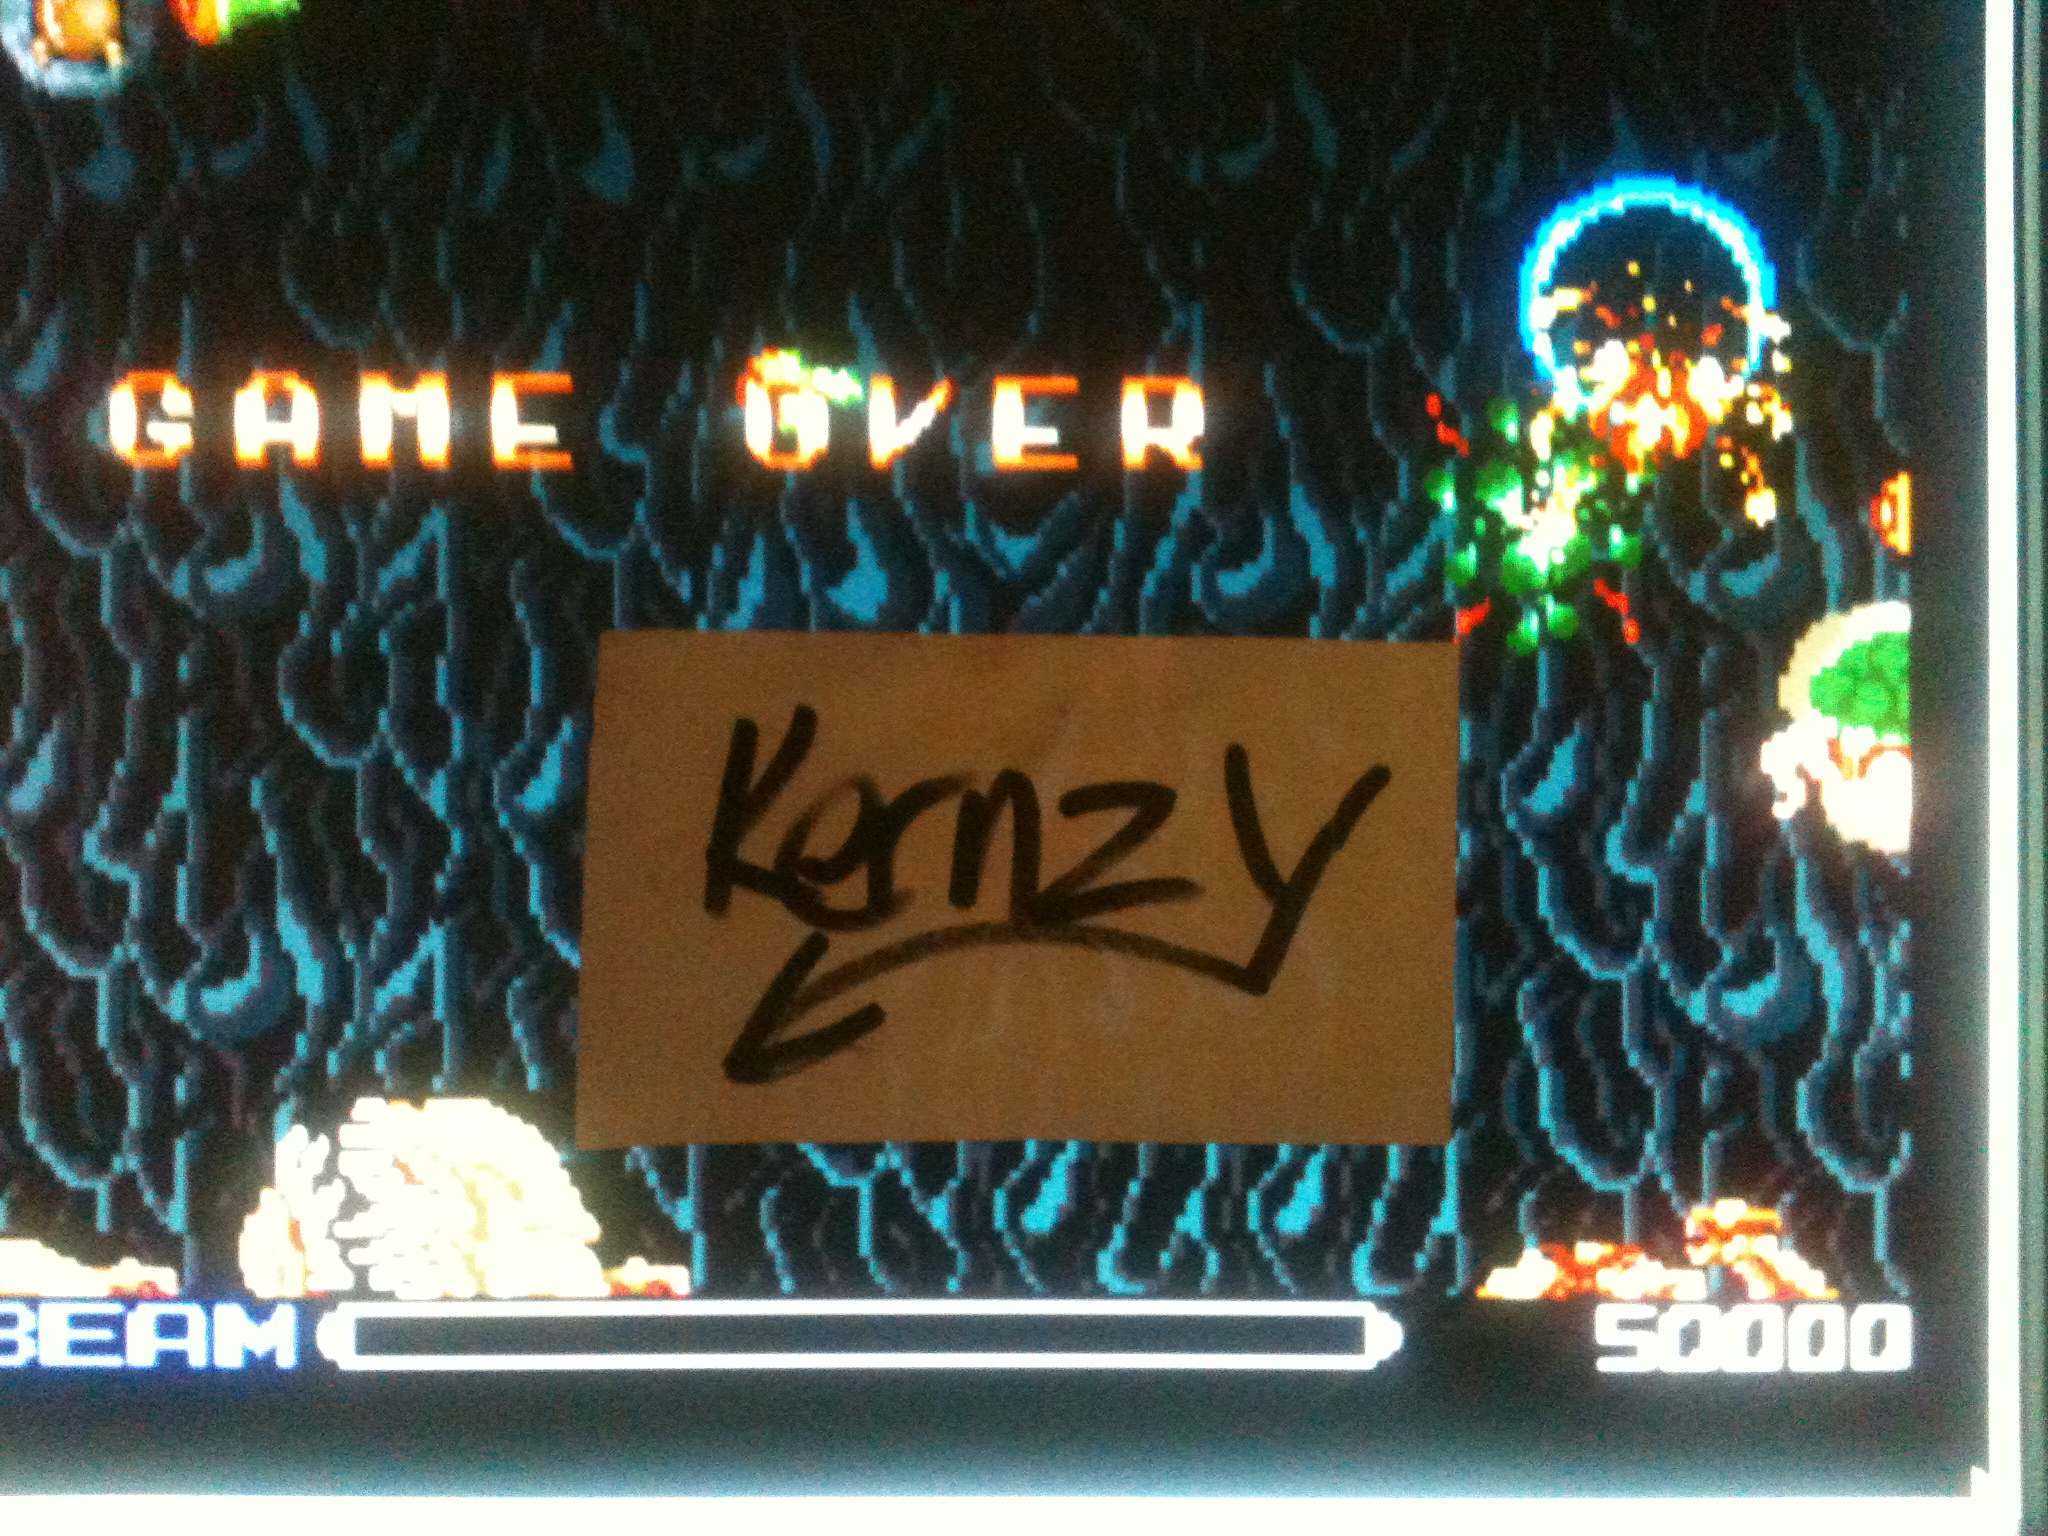 kernzy: R-Type Complete (TurboGrafx-16/PC Engine Emulated) 50,000 points on 2014-11-25 05:49:40